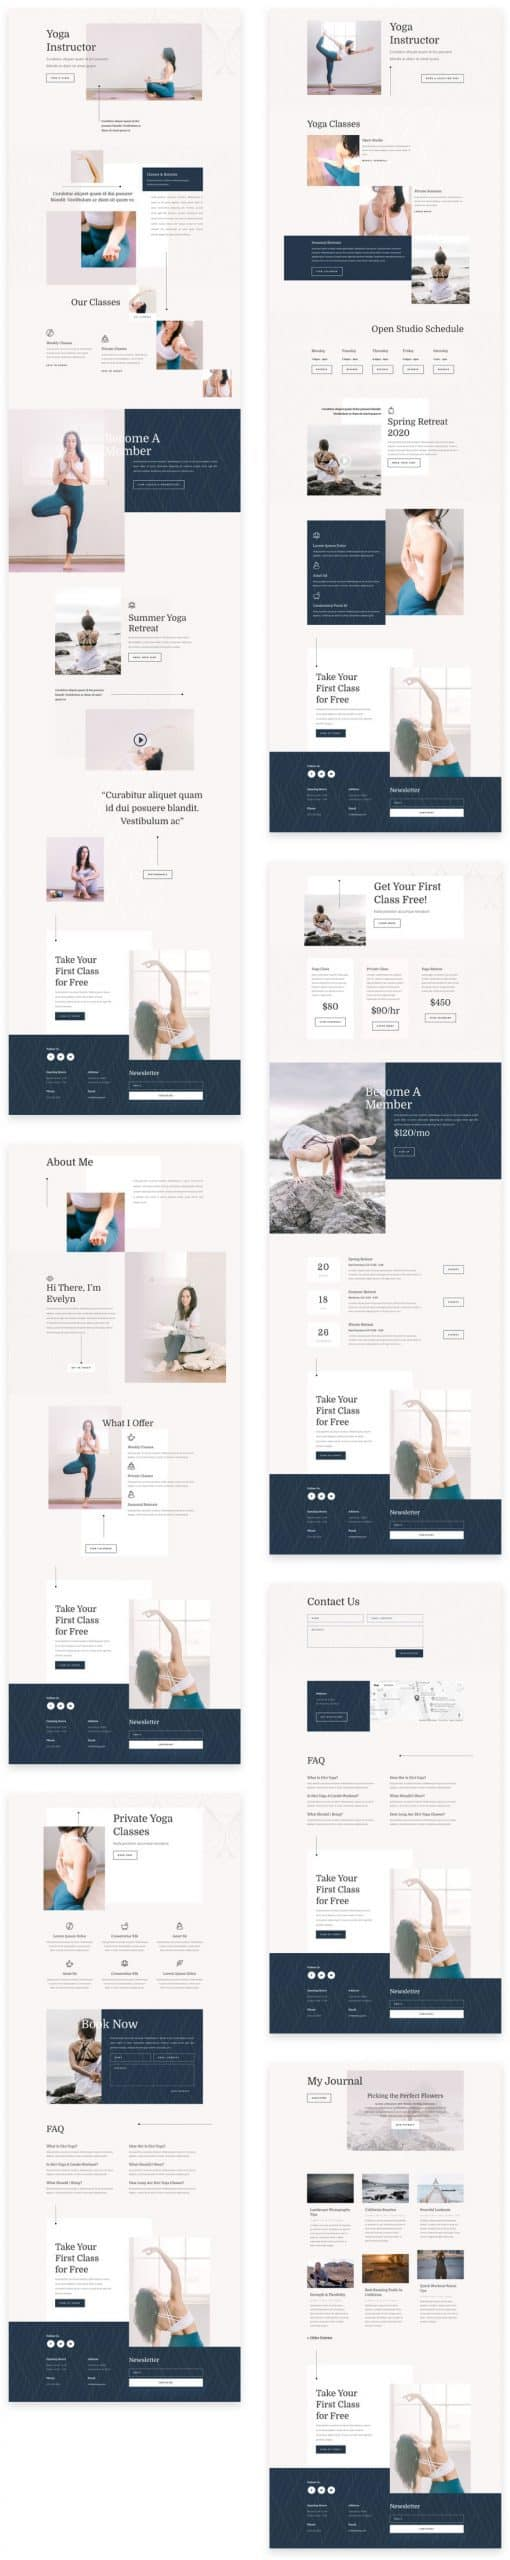 Yoga Instructor Divi Layout Pack